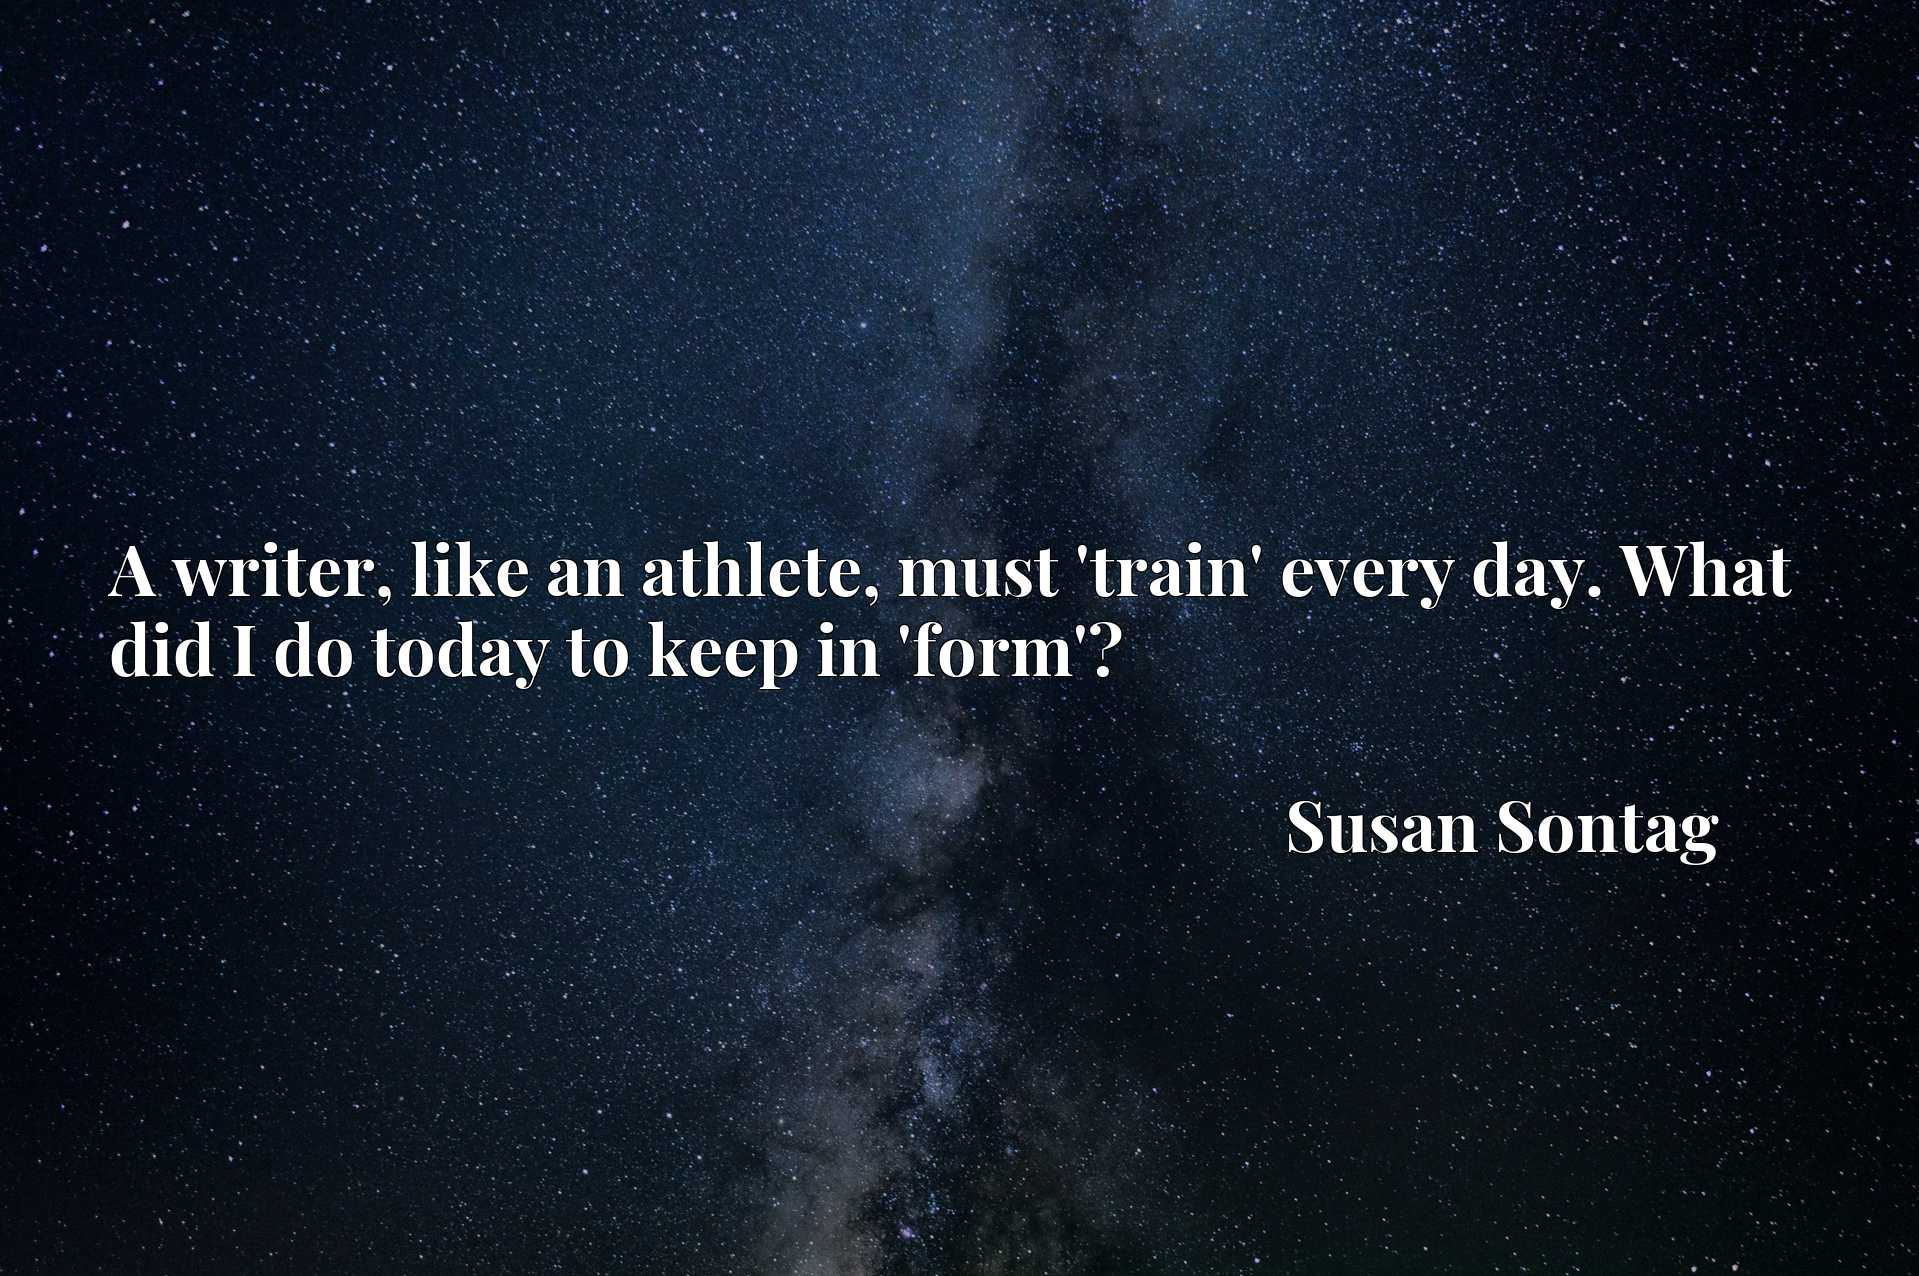 Quote Picture :A writer, like an athlete, must 'train' every day. What did I do today to keep in 'form'?